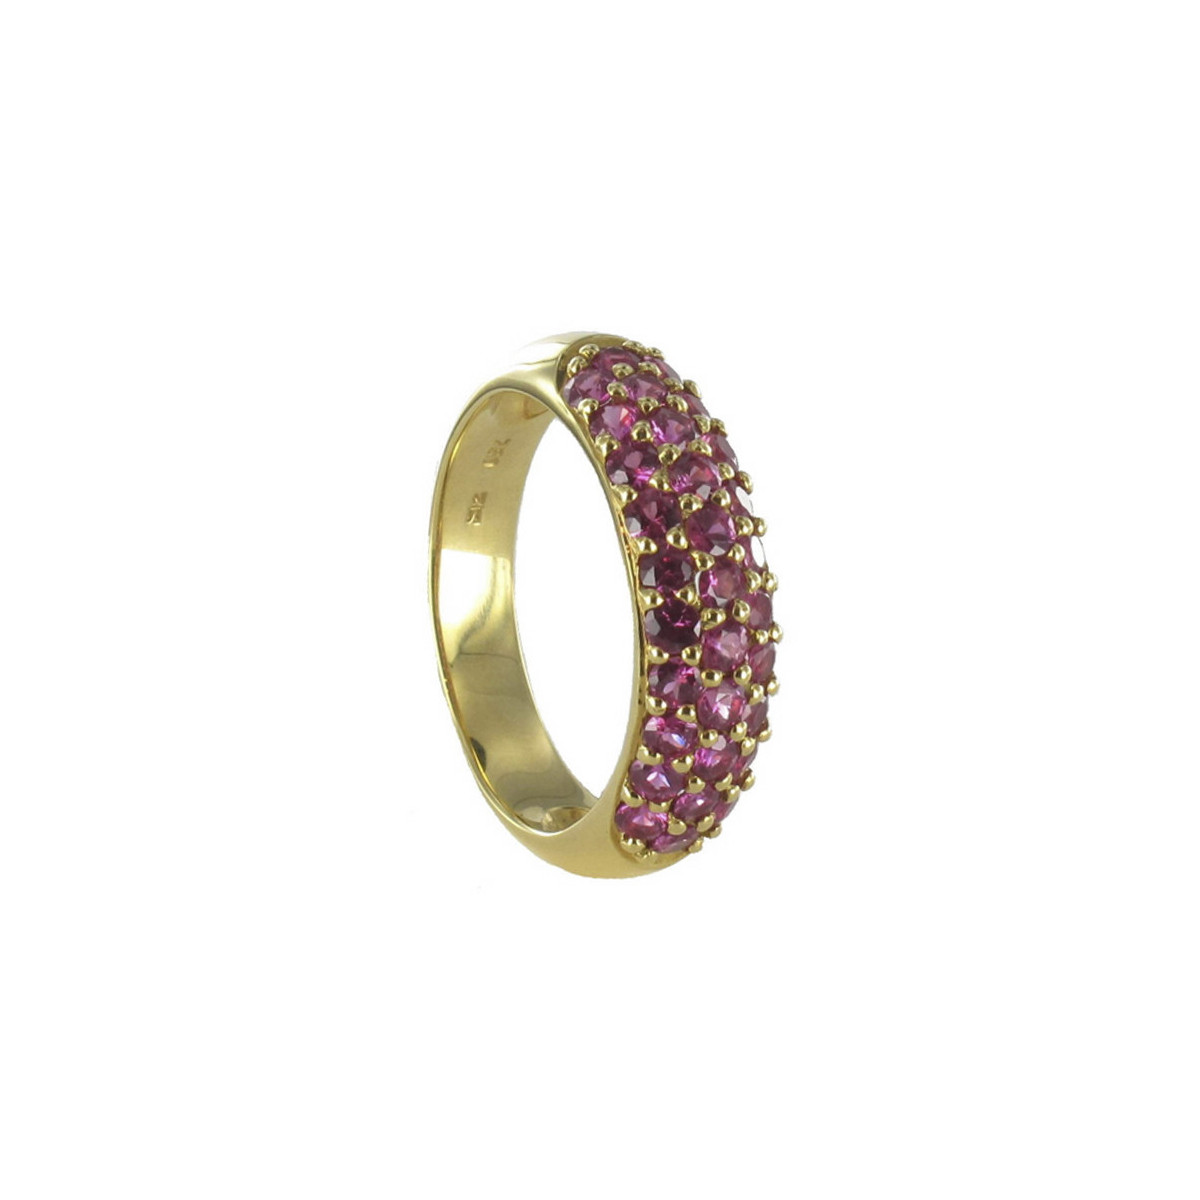 GOLD AND PINK SAPPHIRES RING